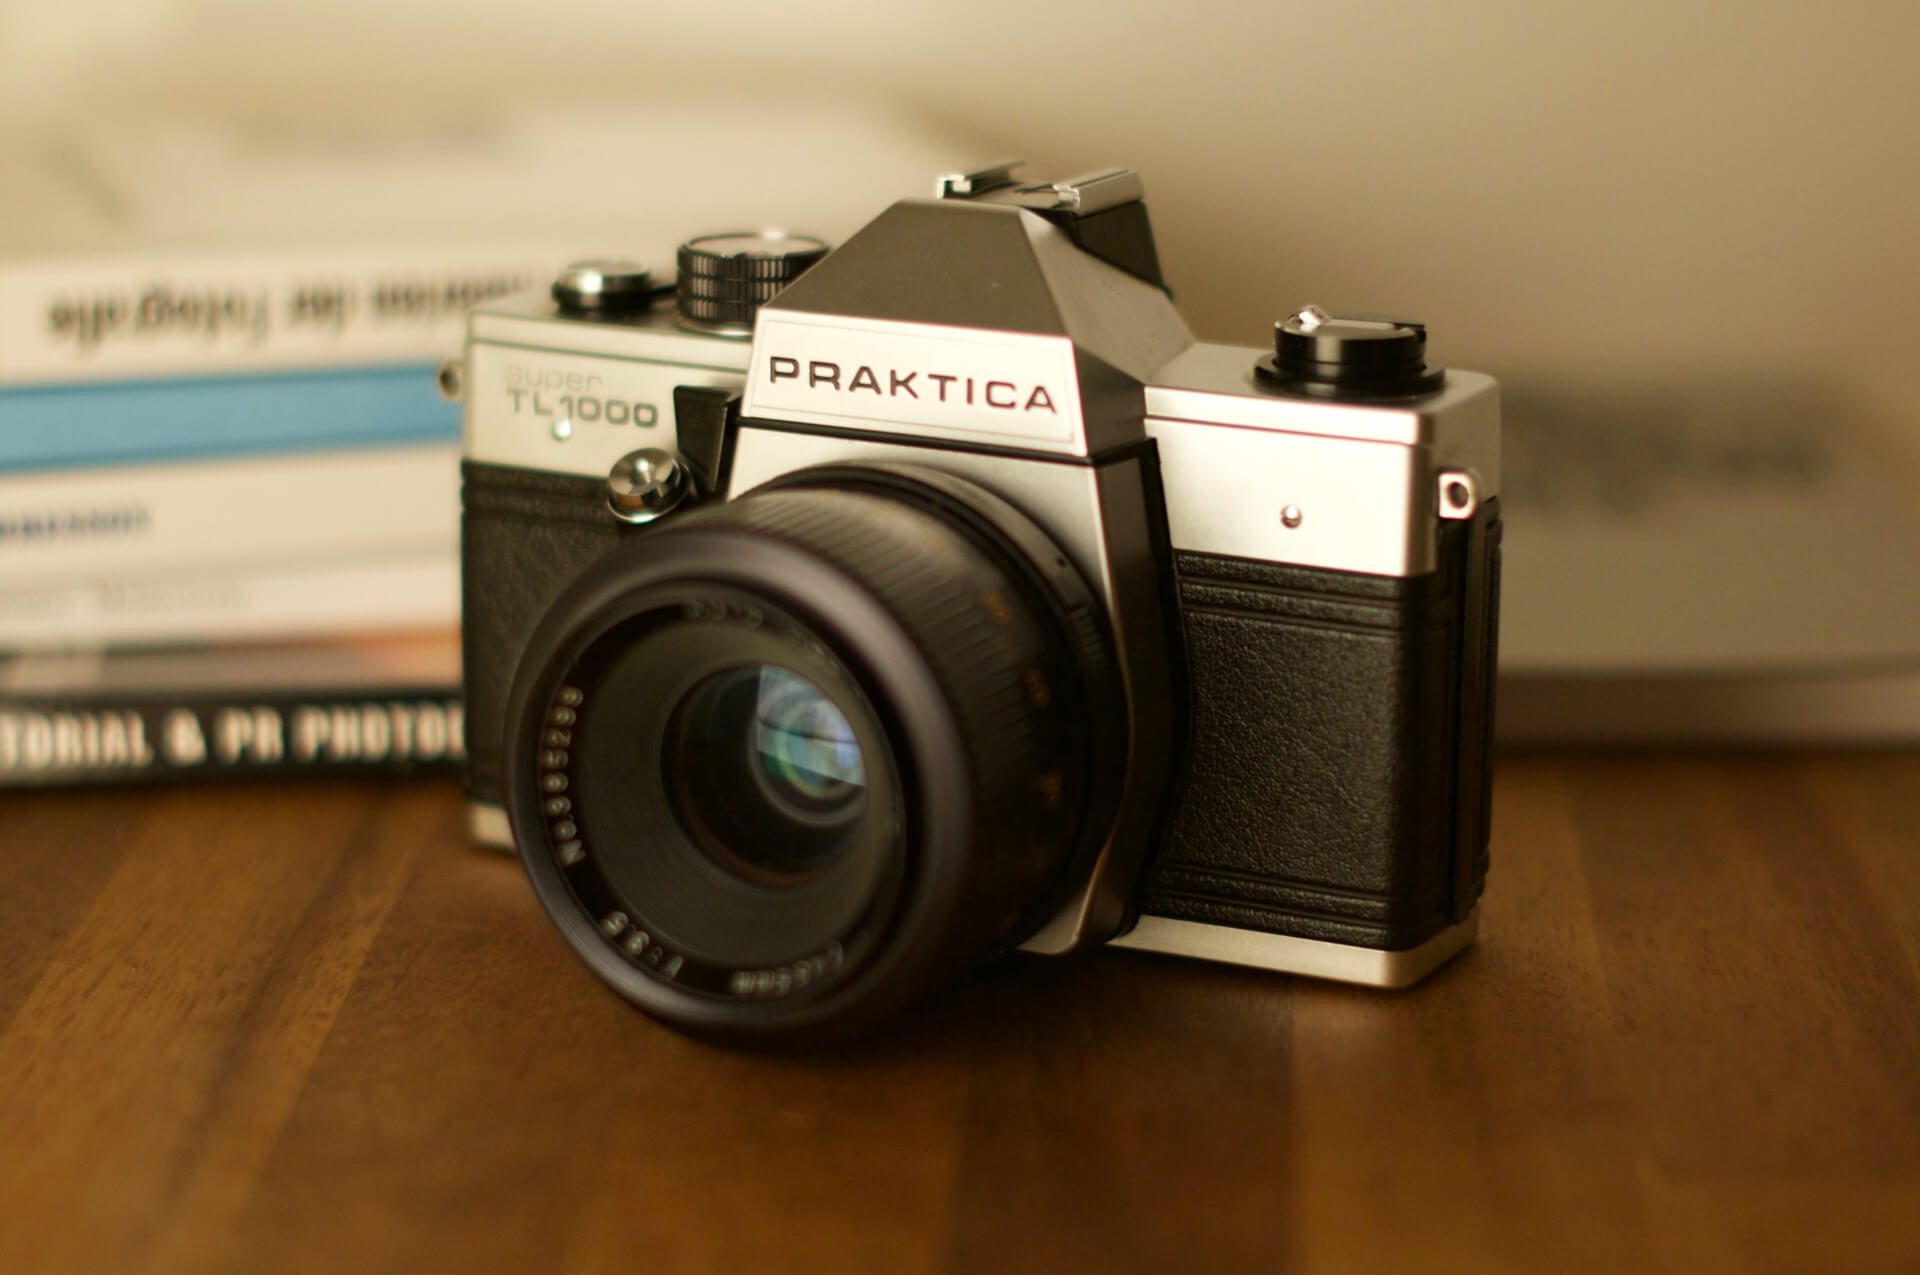 Praktica super tl kamera u rathgeber photos